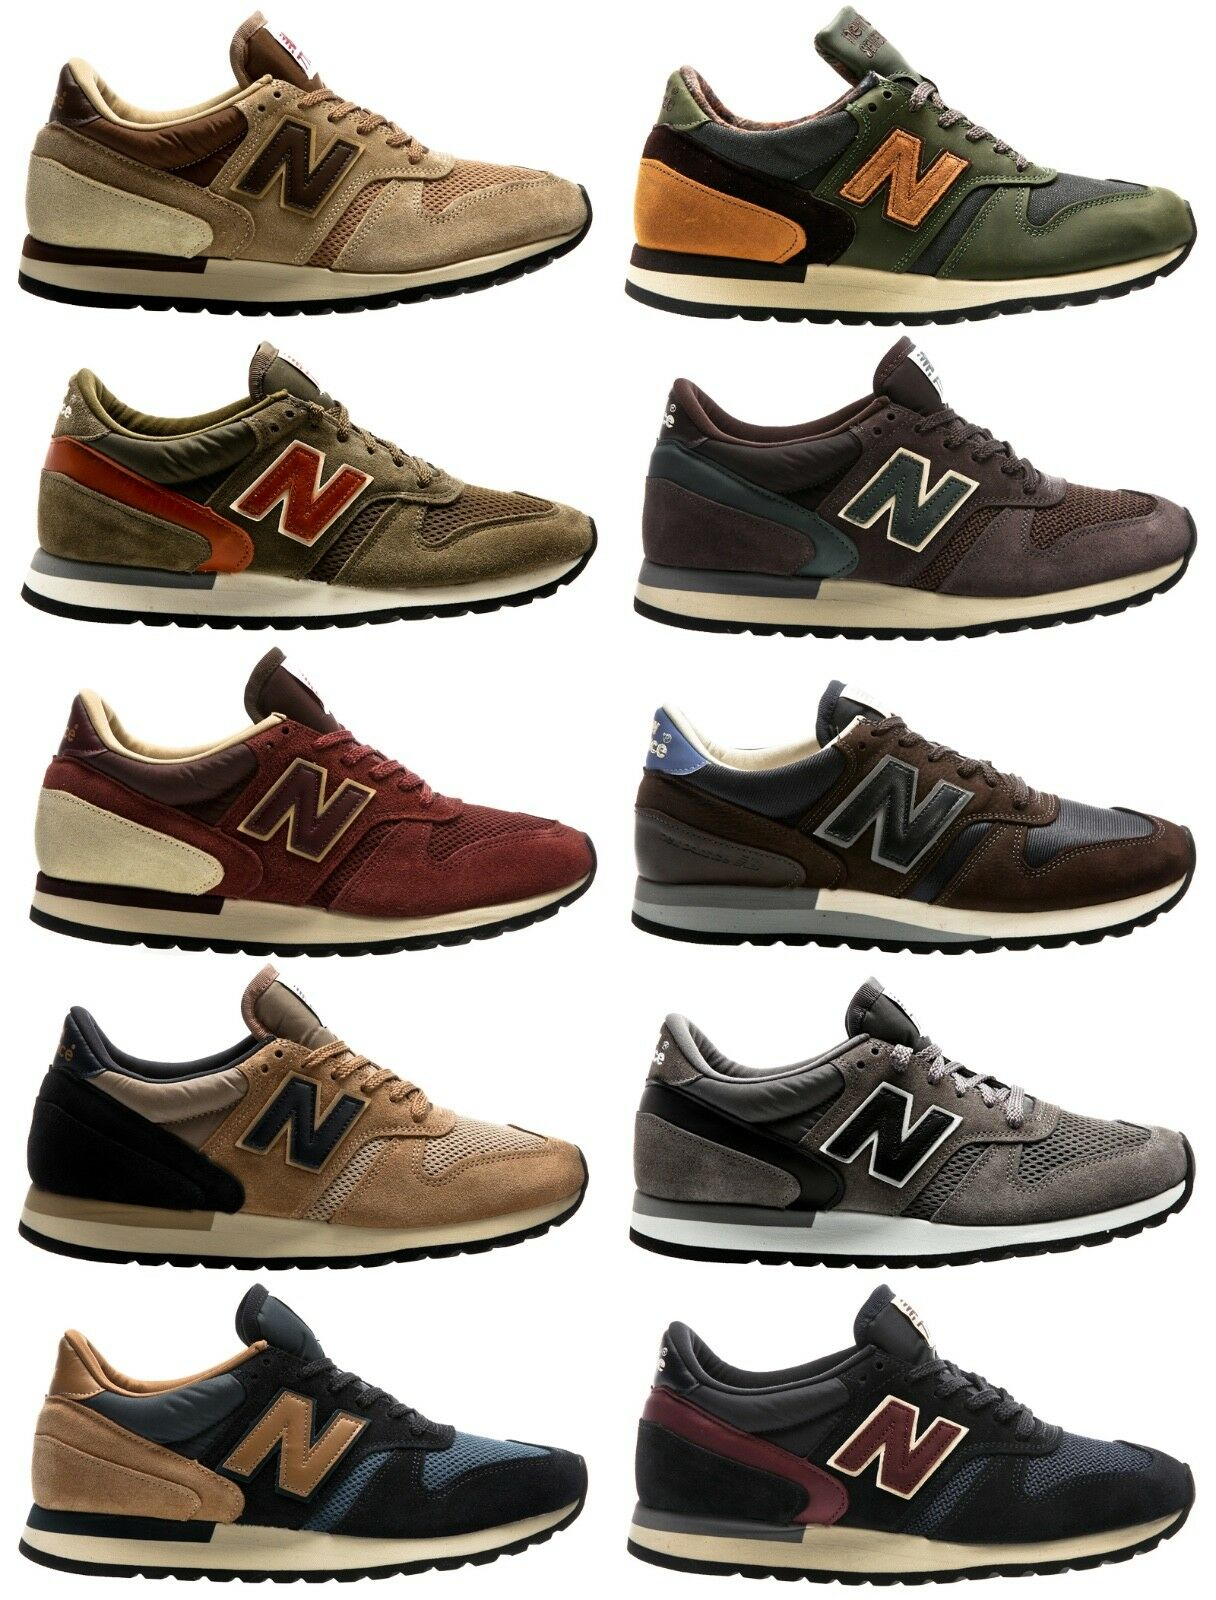 New Balance M770 770 NP SBN BBB RBB SNB AEF as MGC GN GT Men Sneaker